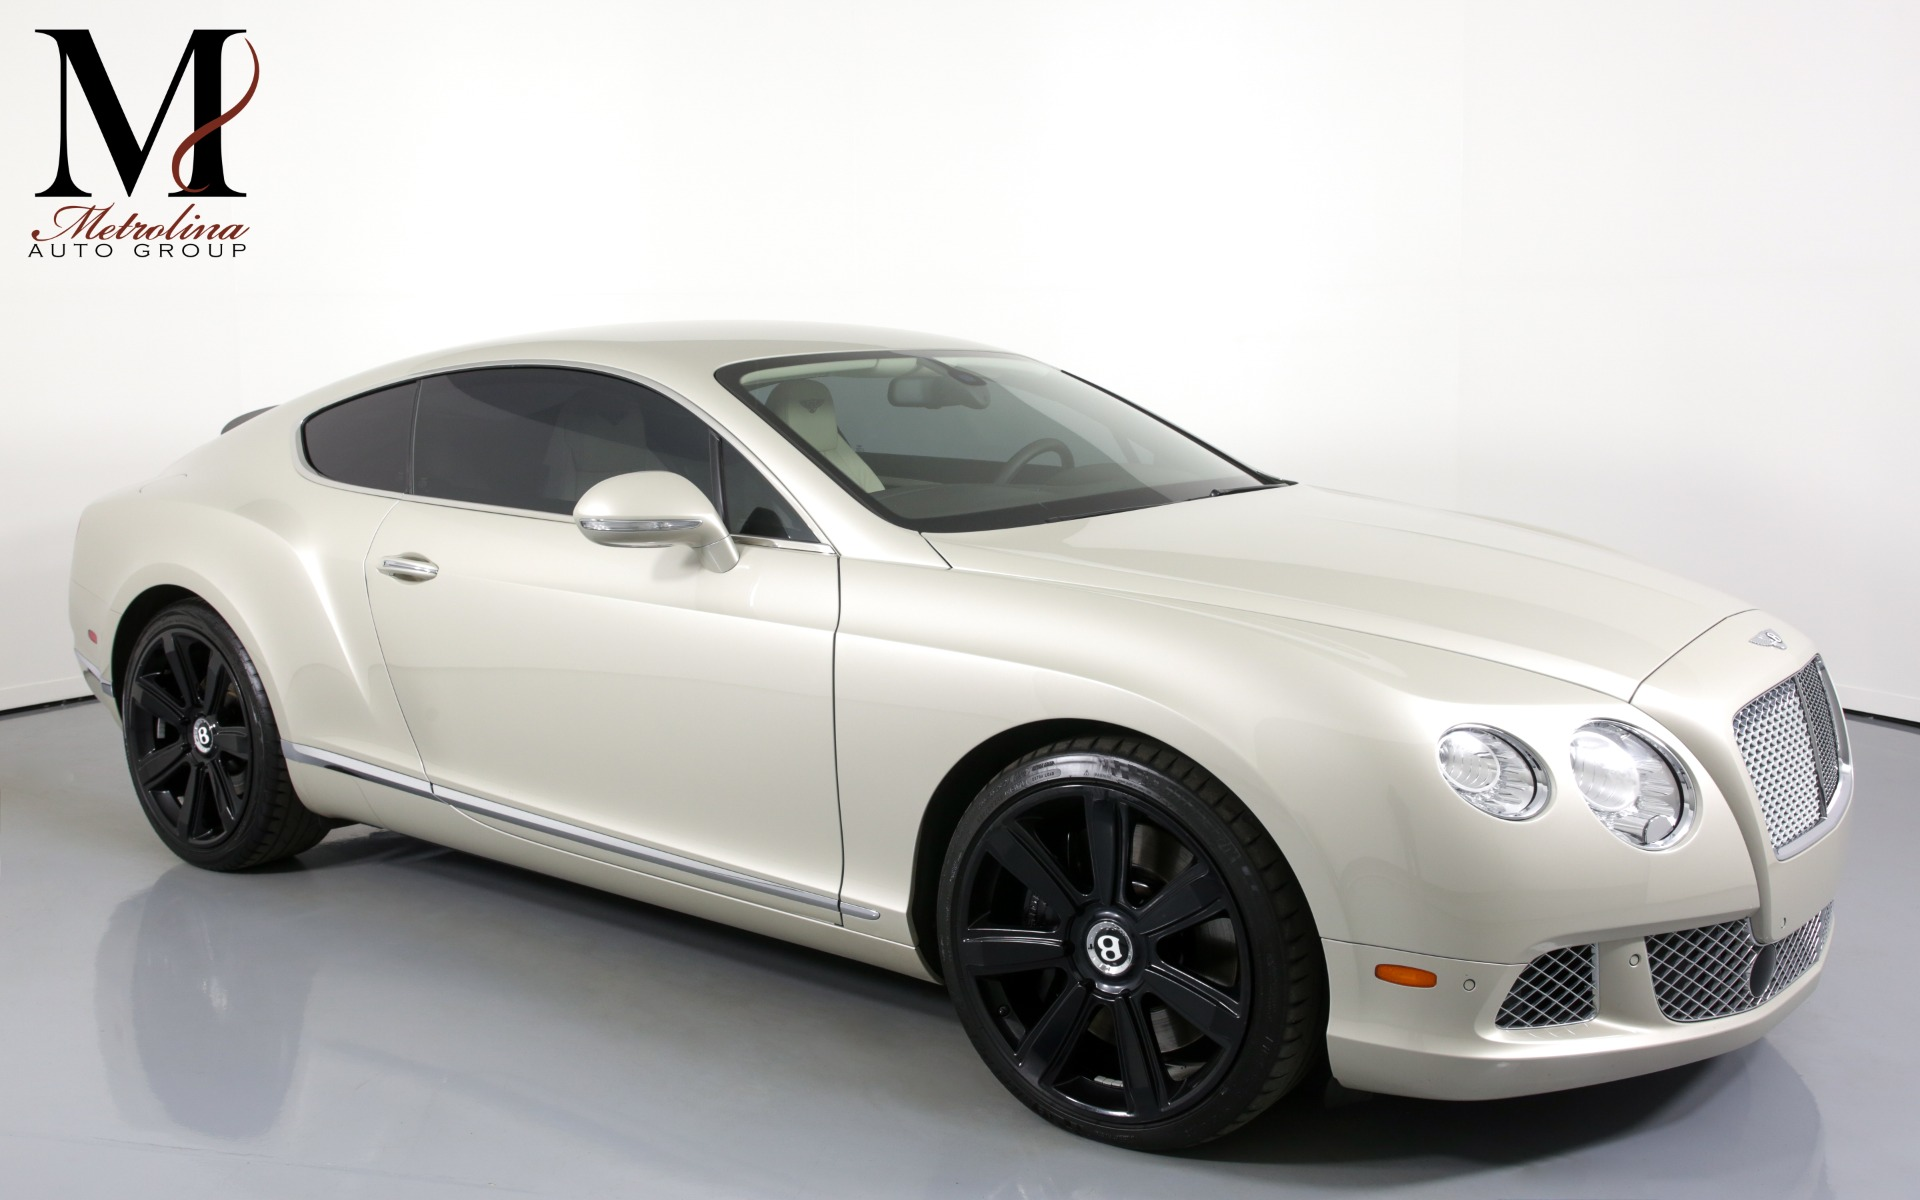 Used 2012 Bentley Continental GT for sale $74,996 at Metrolina Auto Group in Charlotte NC 28217 - 1